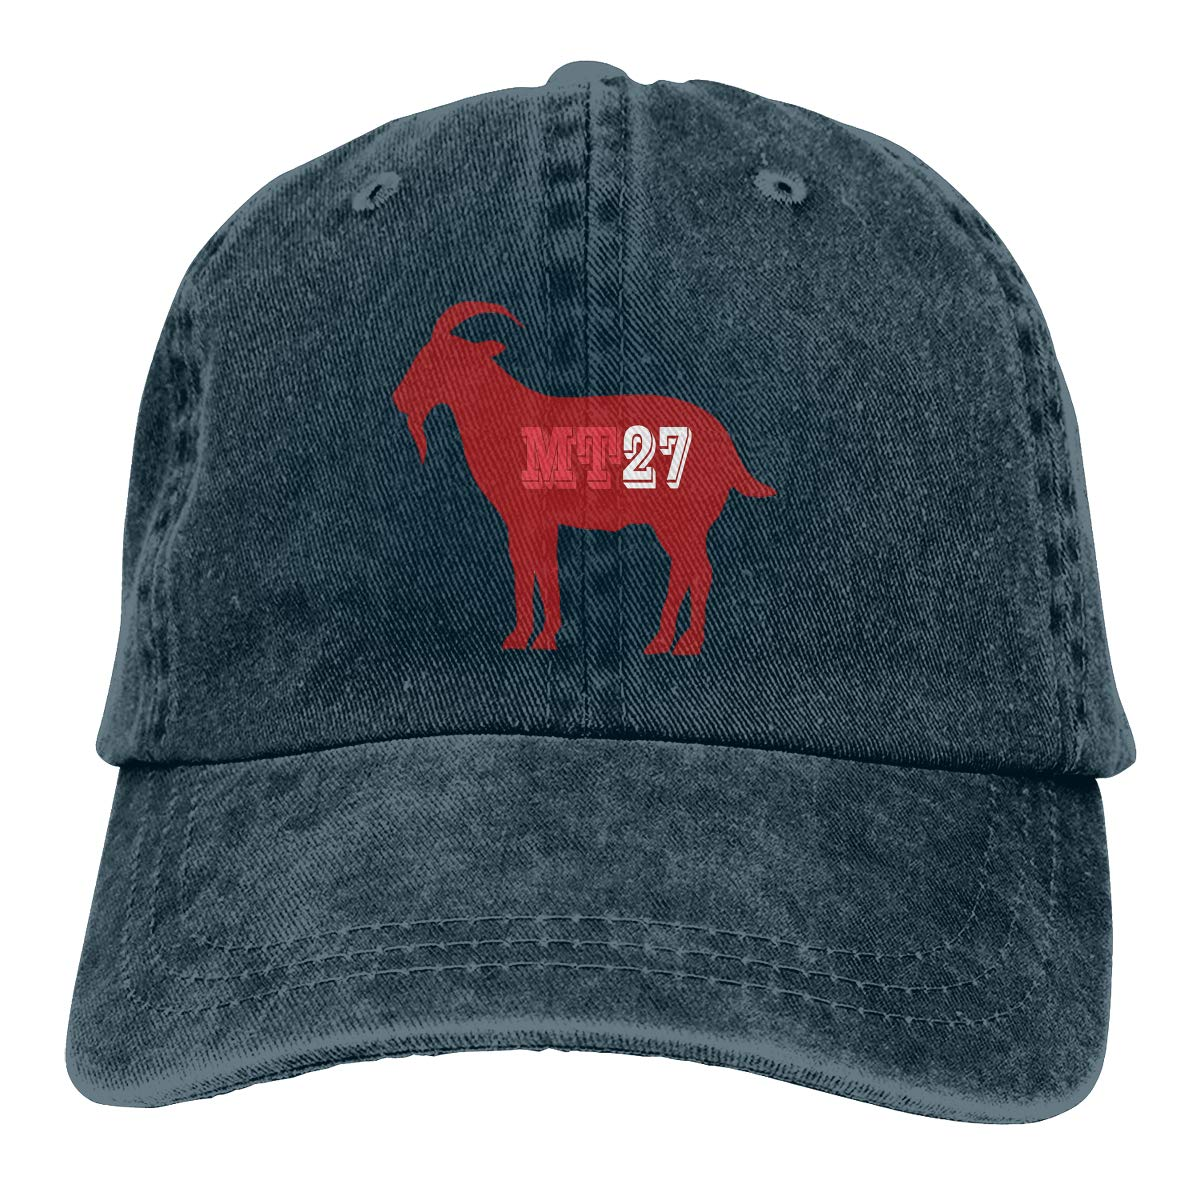 ORYISGAD Los Angeles Trout Goat Sports Cap for Mens and Womens